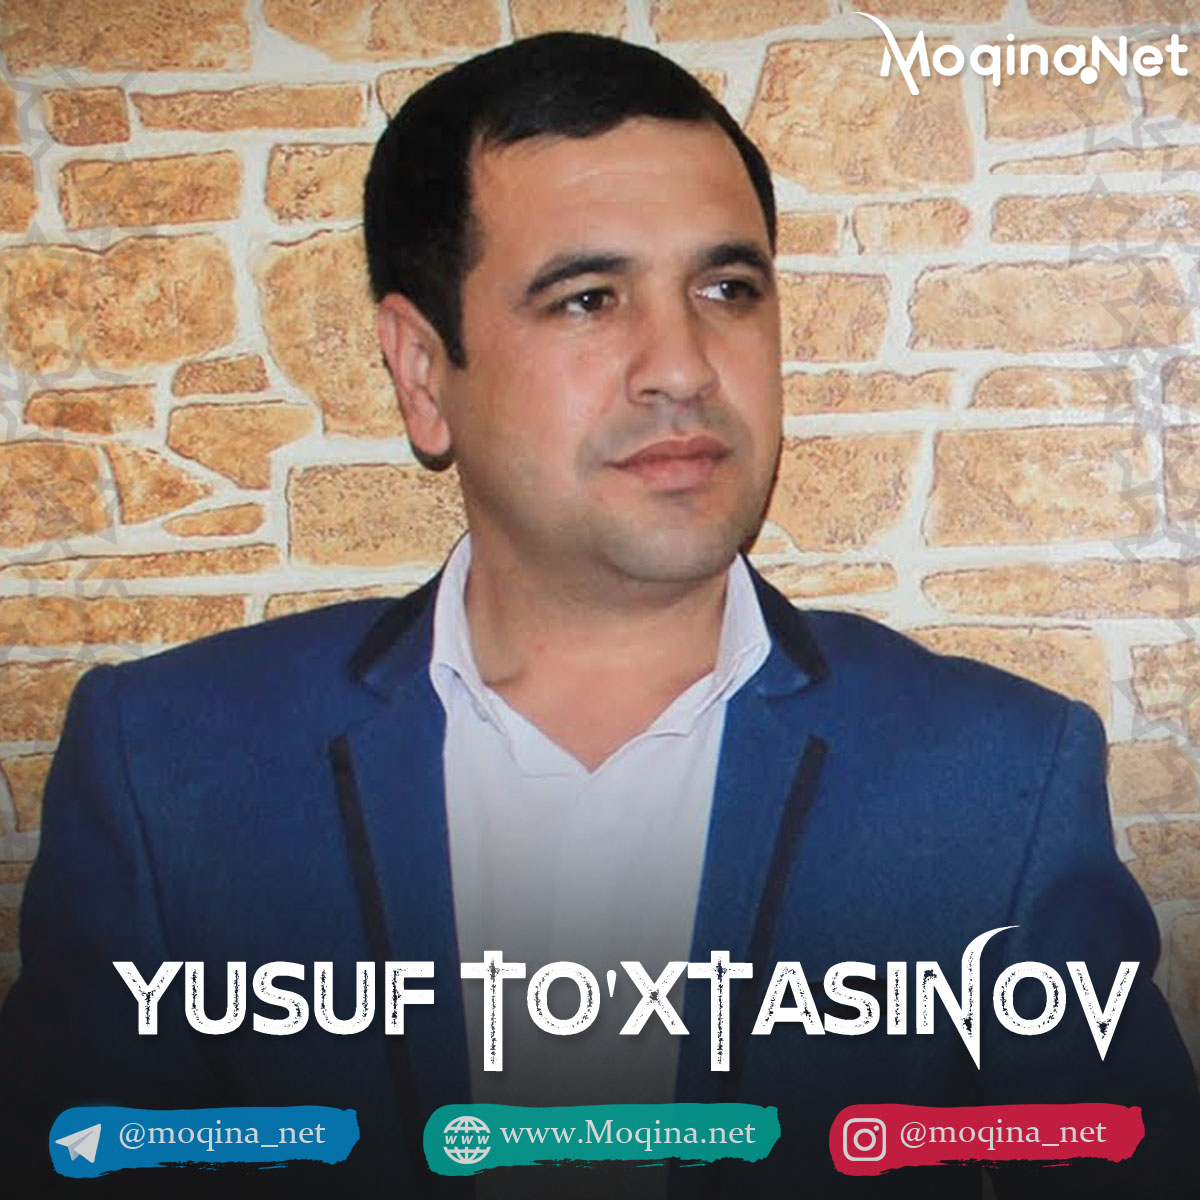 Yusufbek To'xtasinov - Shahlo